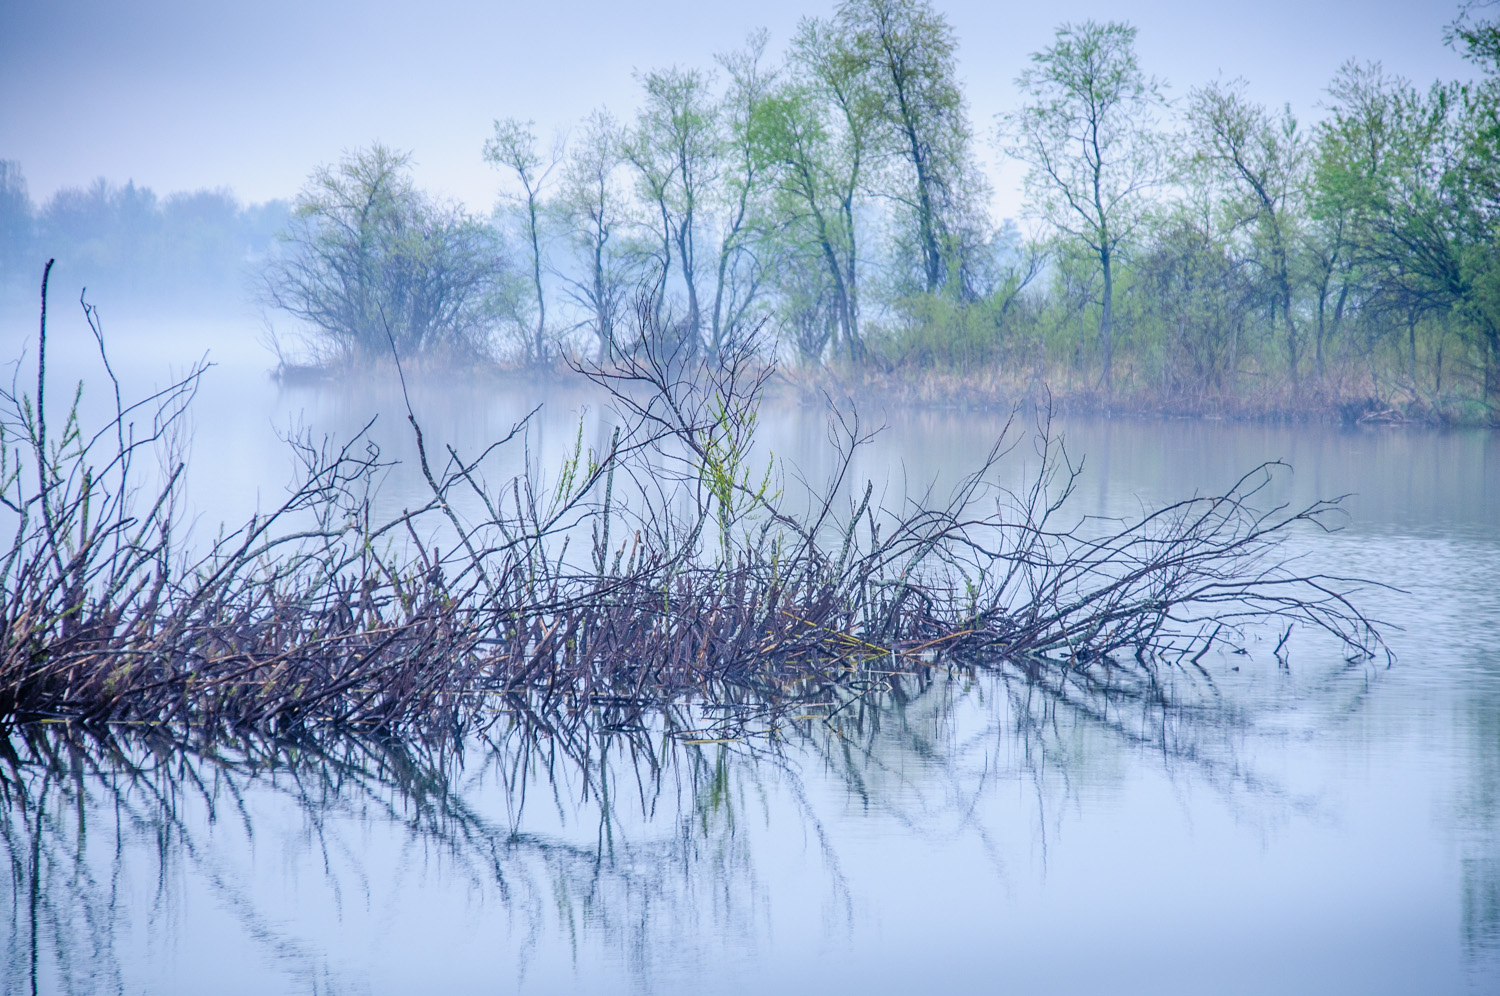 Mist over the St. Lawrence River, Ontario, Canada